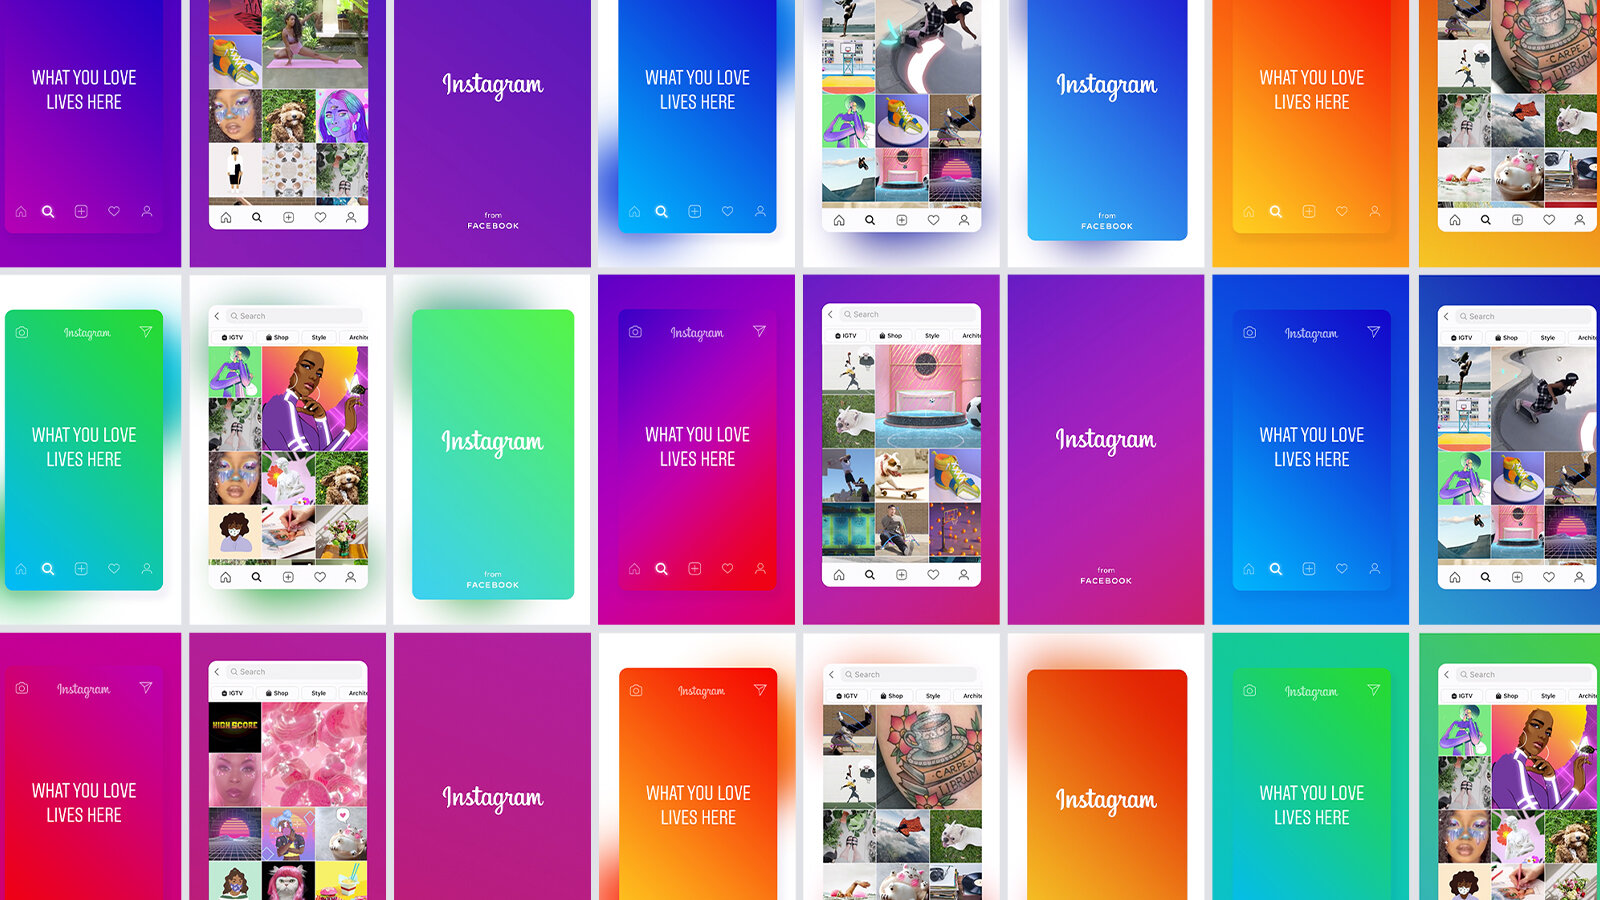 A collection of images to show the design system of the Instagram project.